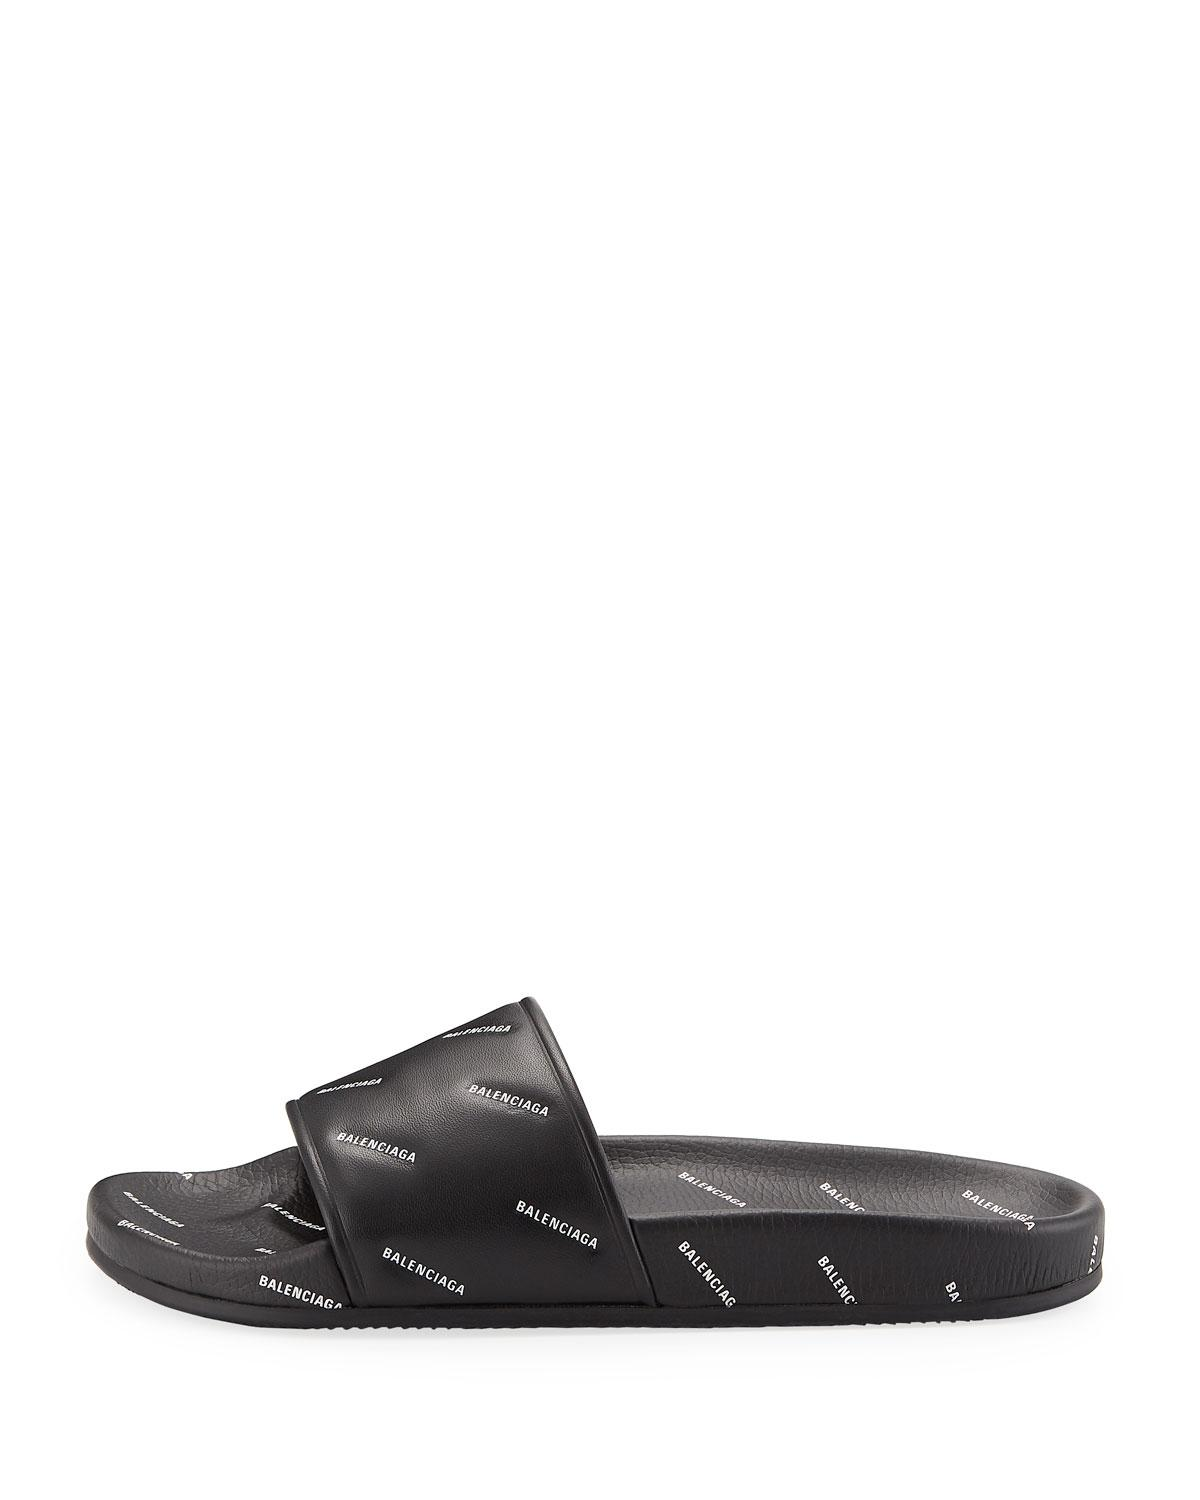 6e9315b47ee6 Lyst - Balenciaga Men s Logo-print Pool Slide Sandals in Black for Men - Save  47%